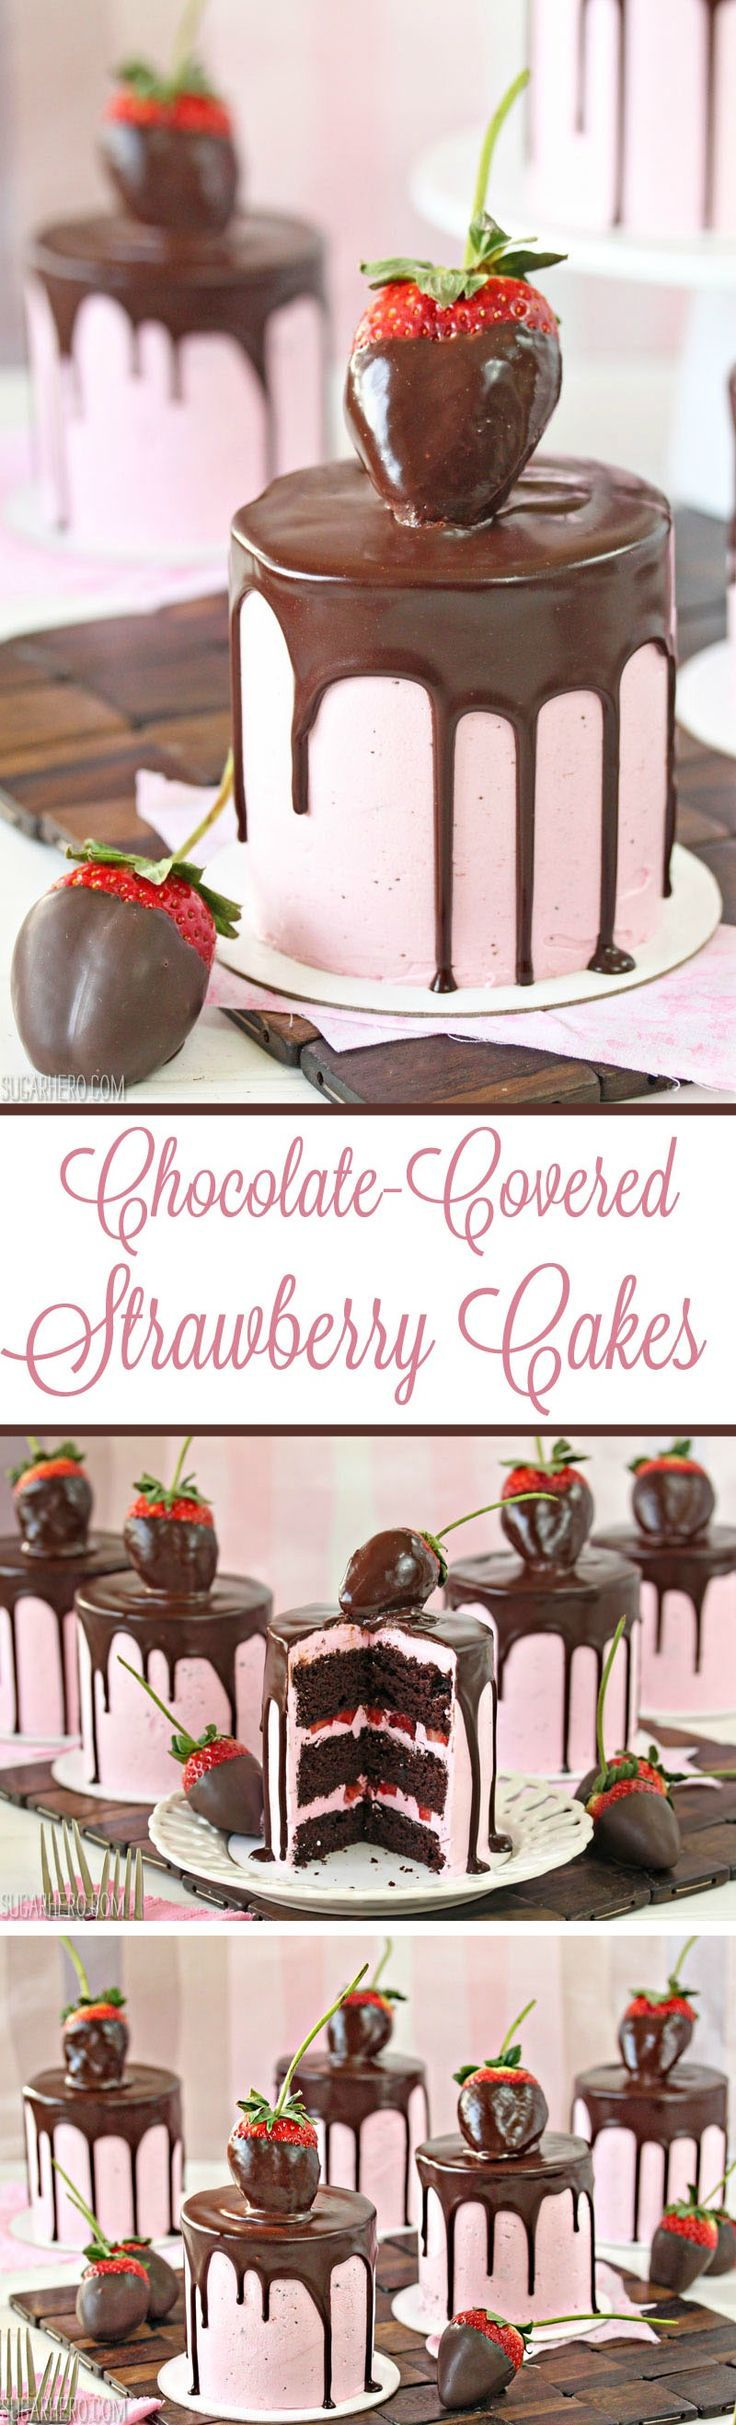 Chocolate-Covered Strawberry Cakes, with chocolate cake and fresh strawberry buttercream! #cake #strawberry #ideas